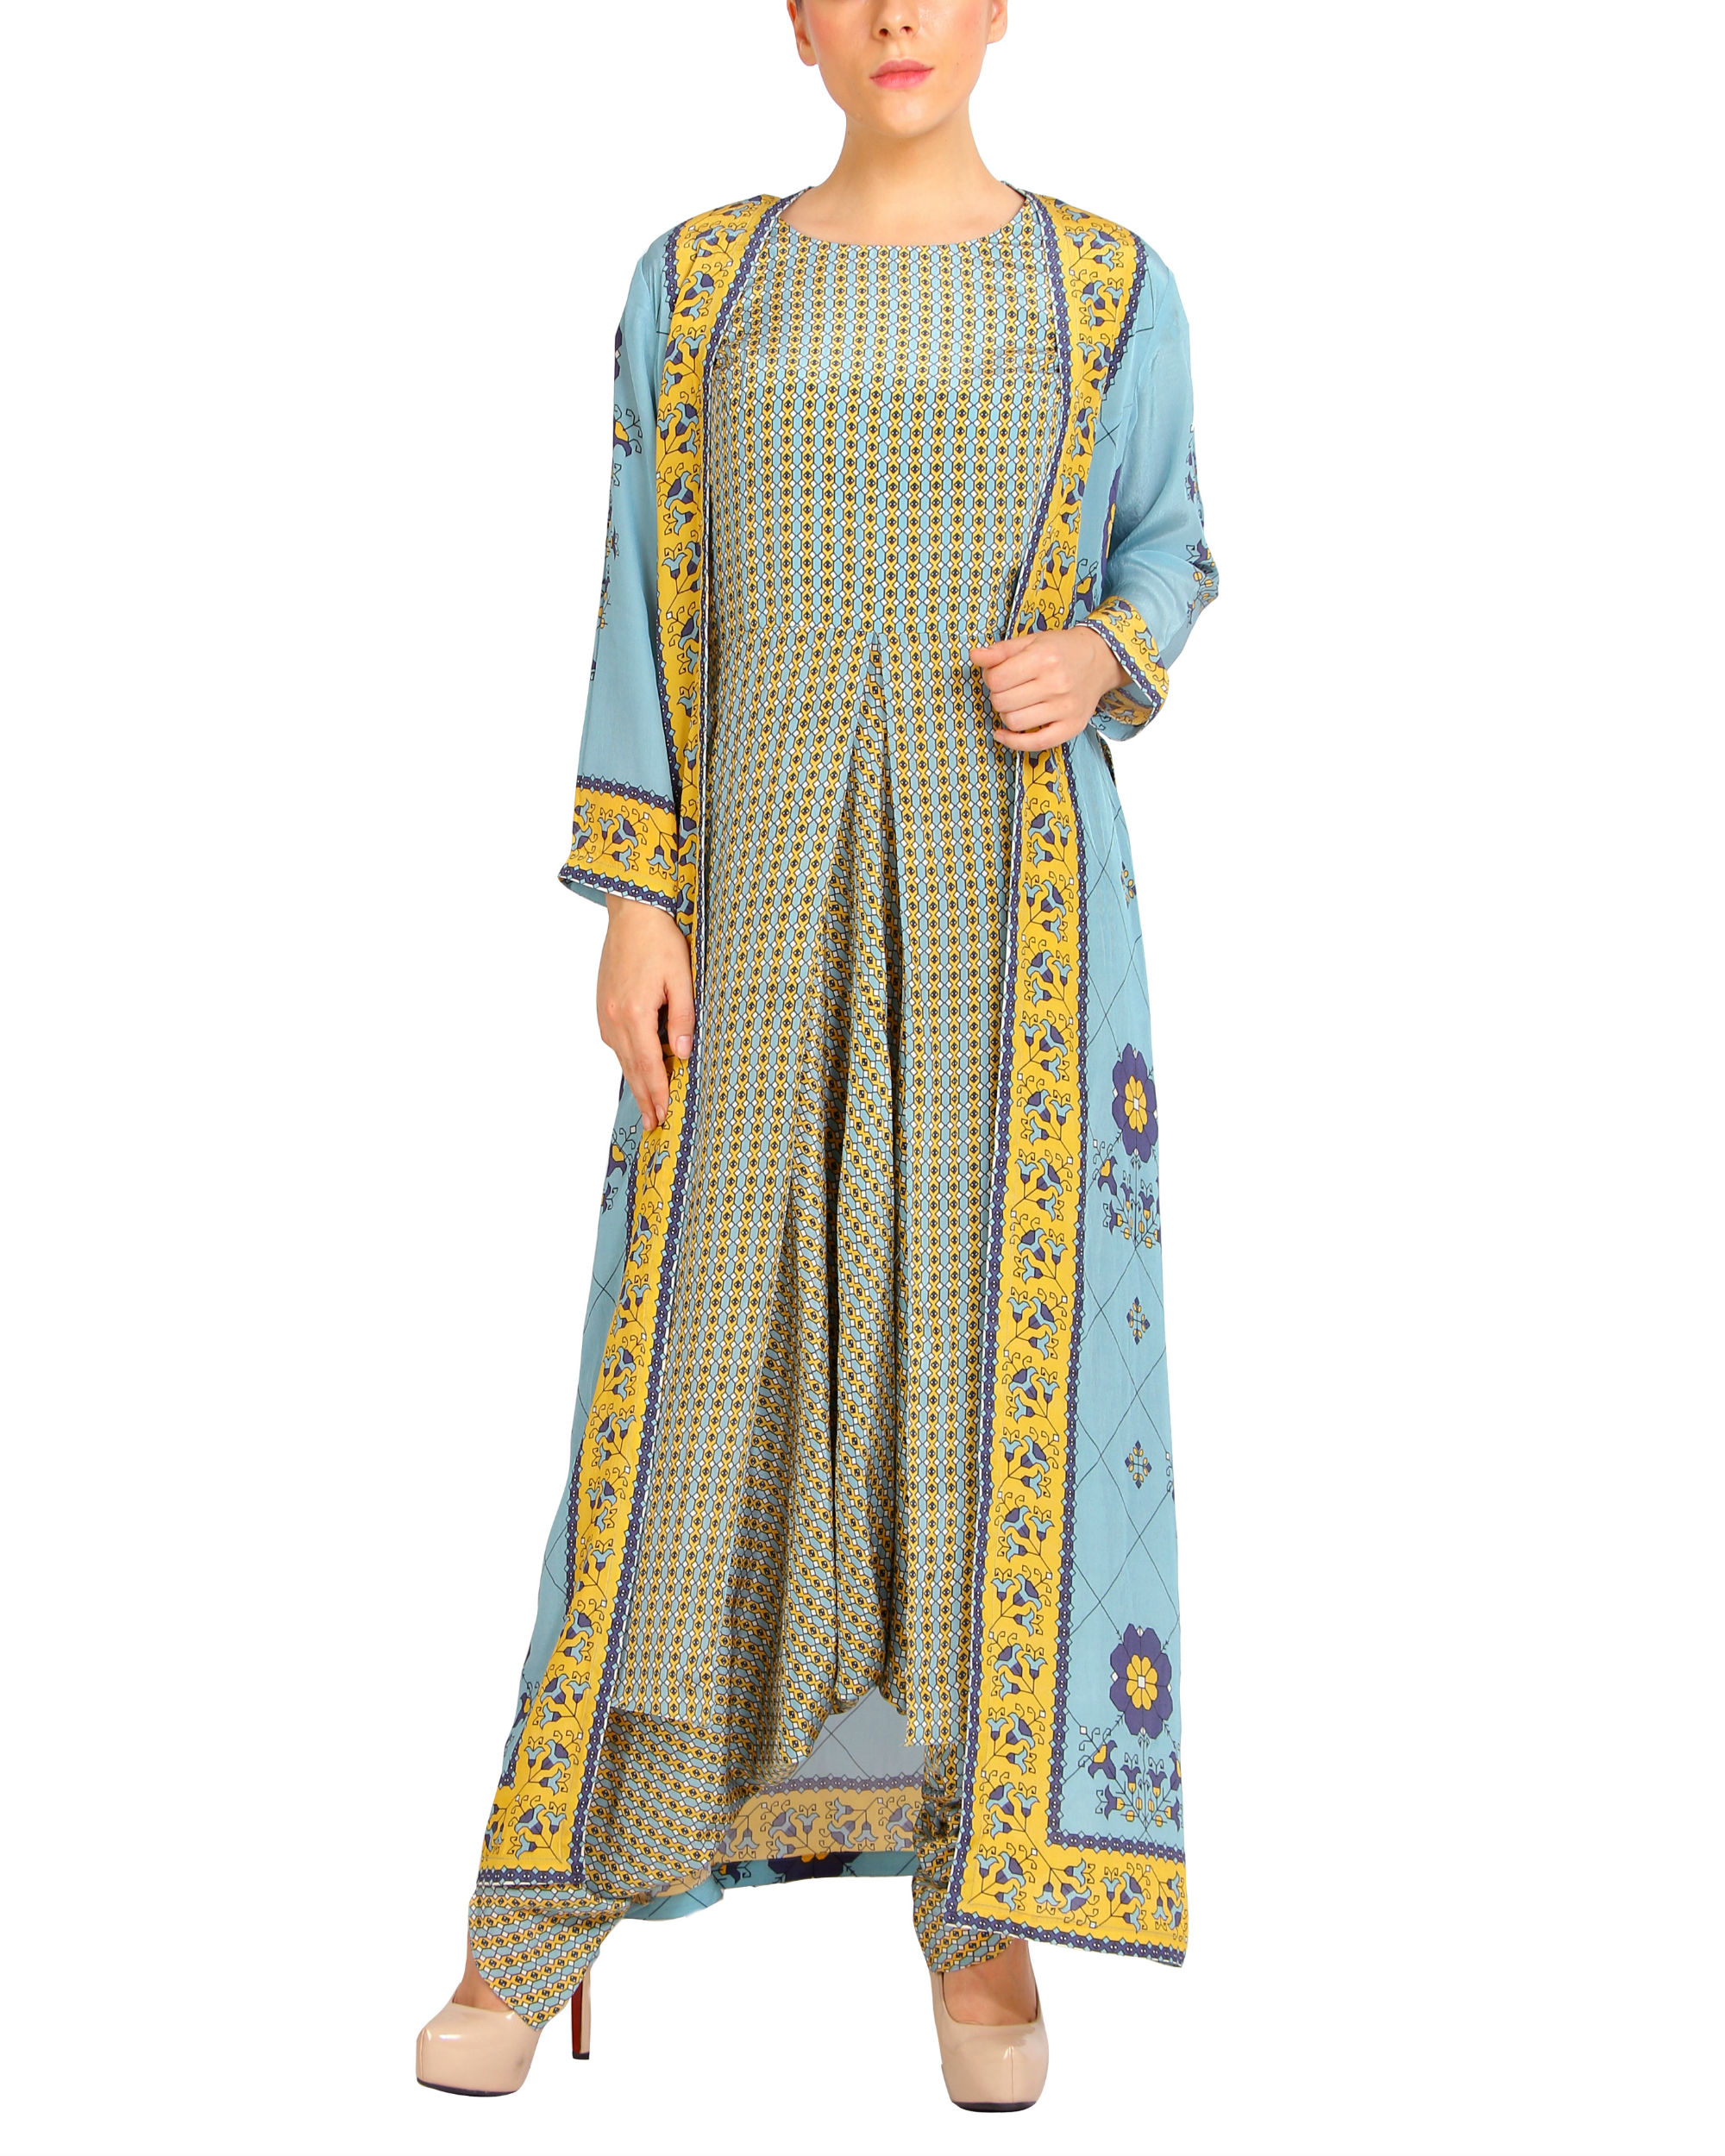 Sky blue and yellow harem printed jumpsuit